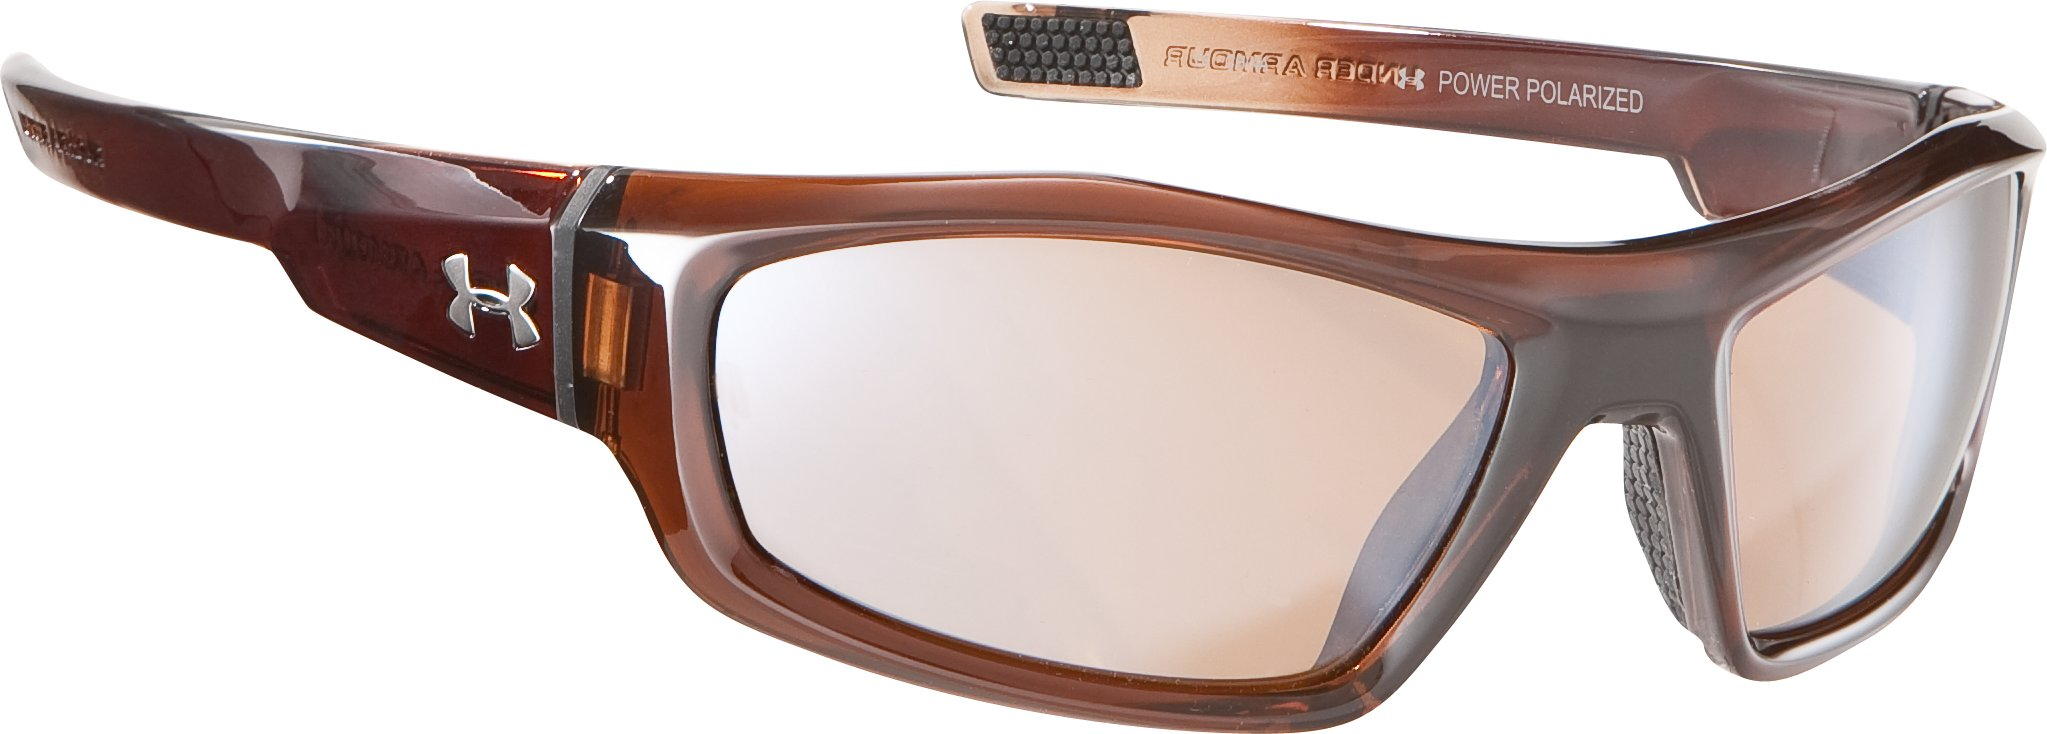 UA Power Polarized Multiflection™ Sunglasses, Shiny Crystal Cleveland Brown, zoomed image